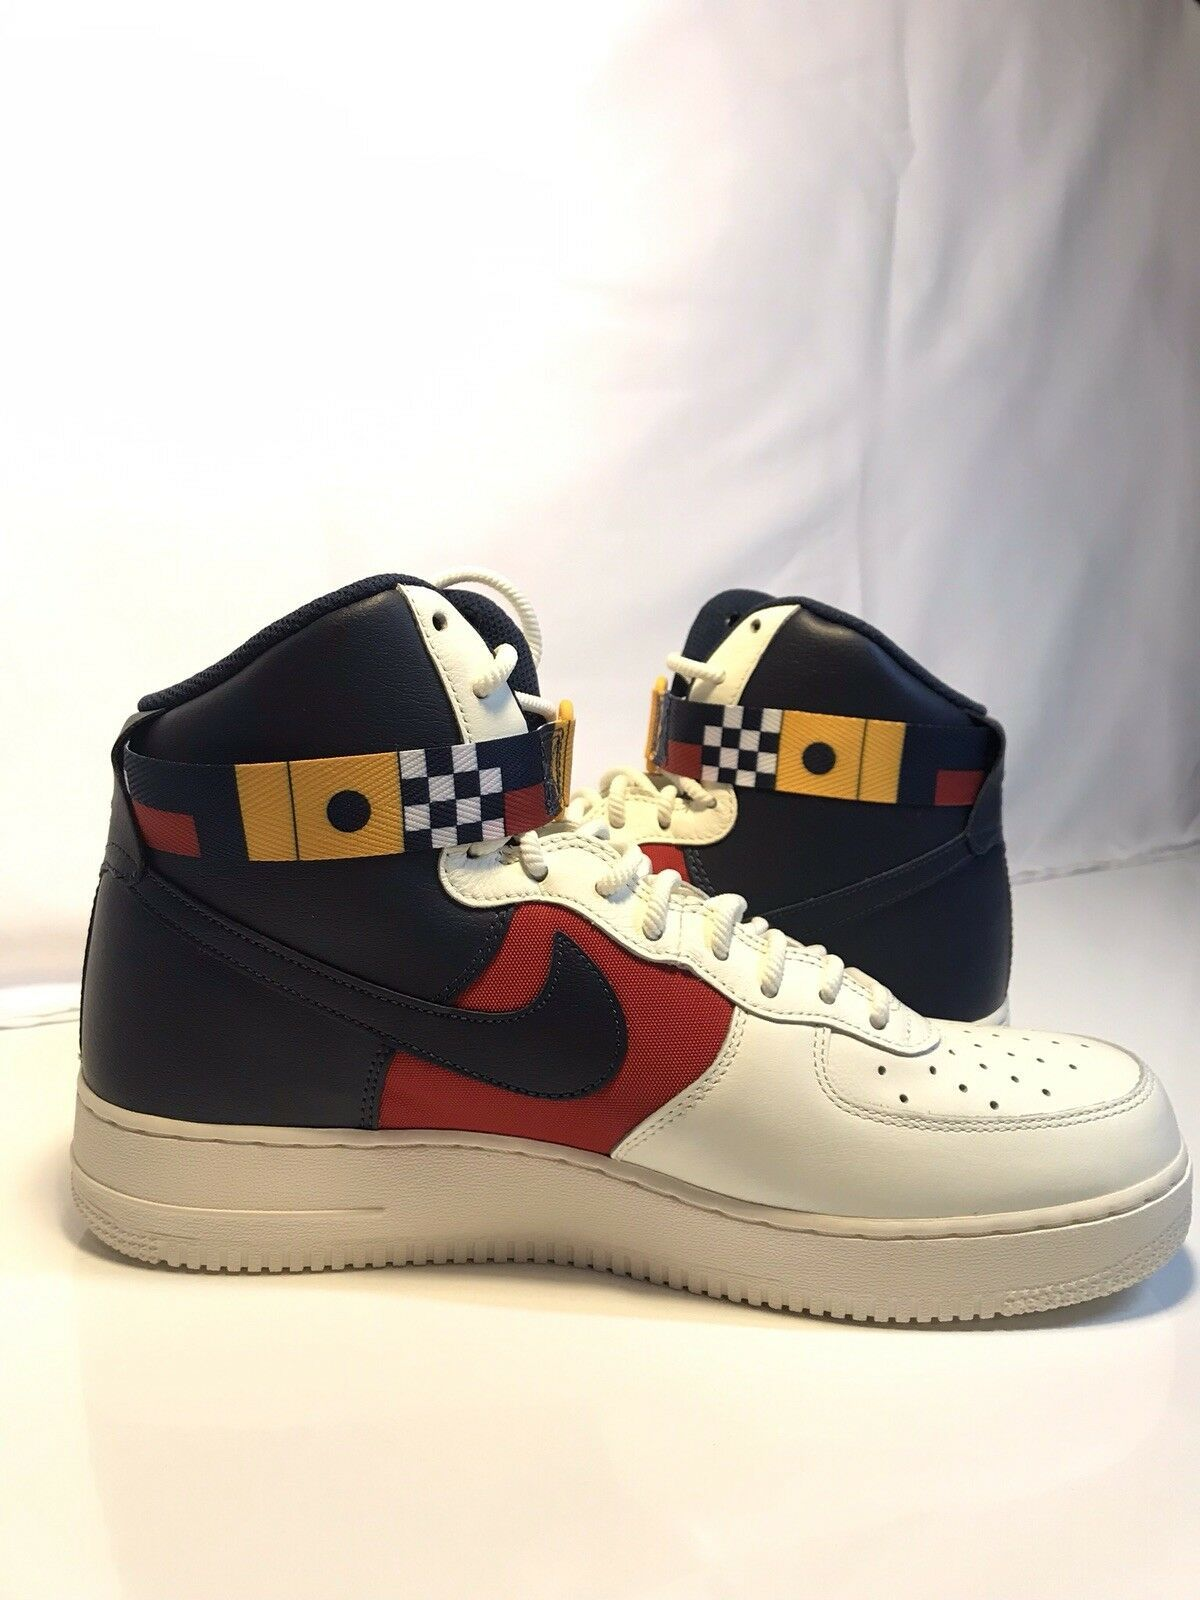 lowest price 1963d fd685 Men s Nike Air Force 1 High 07 LV8  Nautical Redux  Size 10.5 AR5395-100